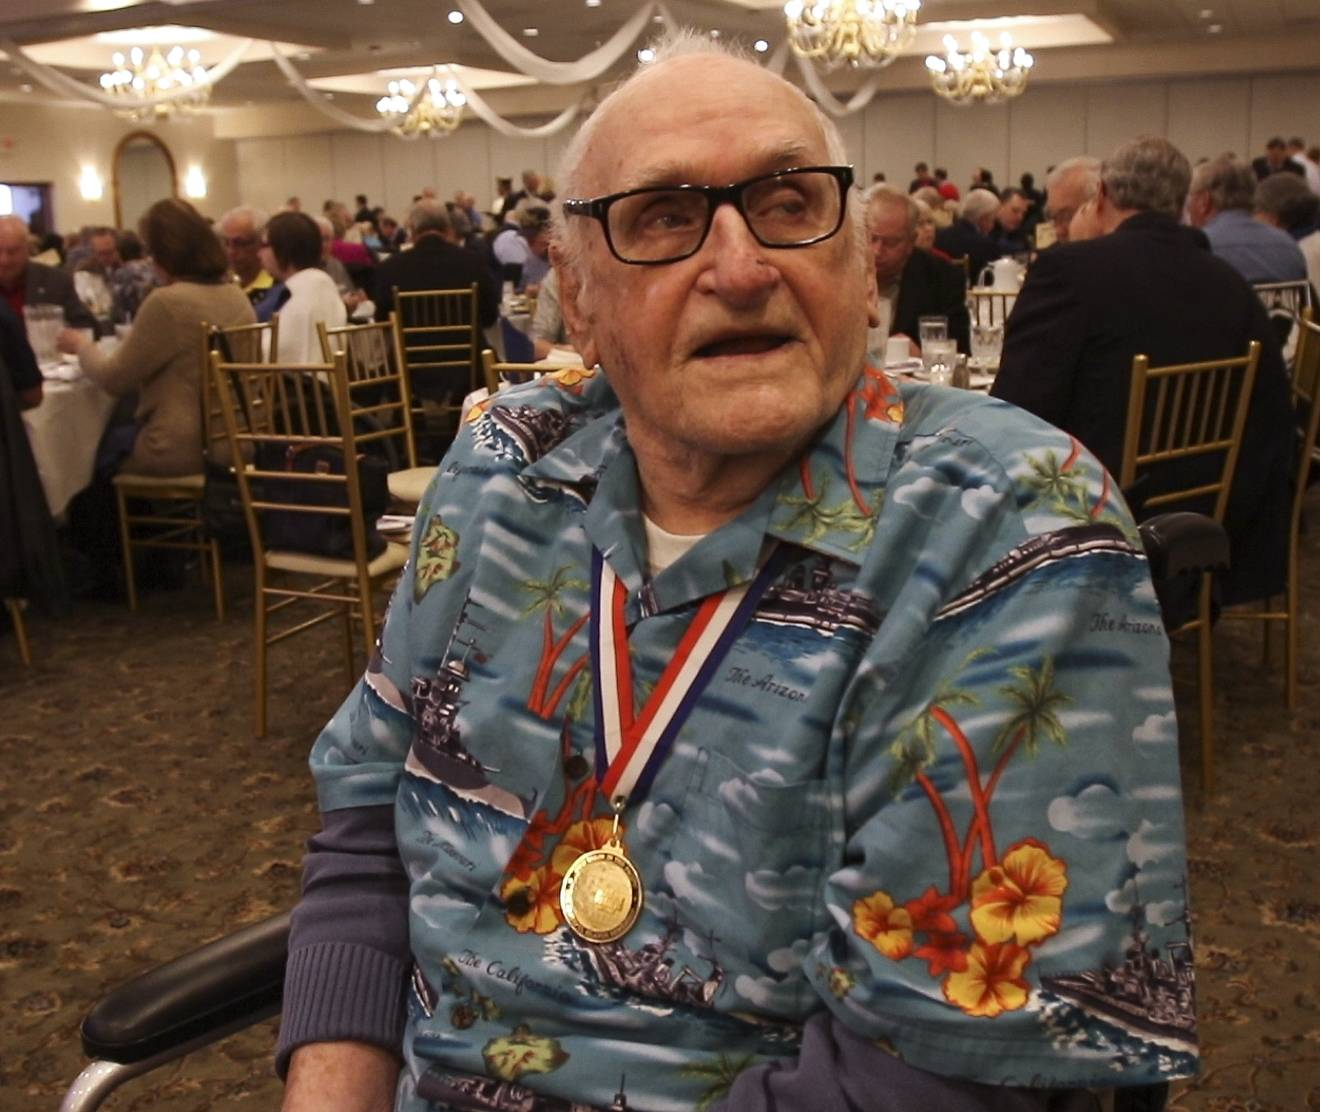 Everitt Schlegel of Elgin, an Army veteran and Pearl Harbor survivor, was honored Monday by the Aurora Council of the Navy League of the United States at an annual Pearl Harbor Day Memorial Luncheon in Aurora.